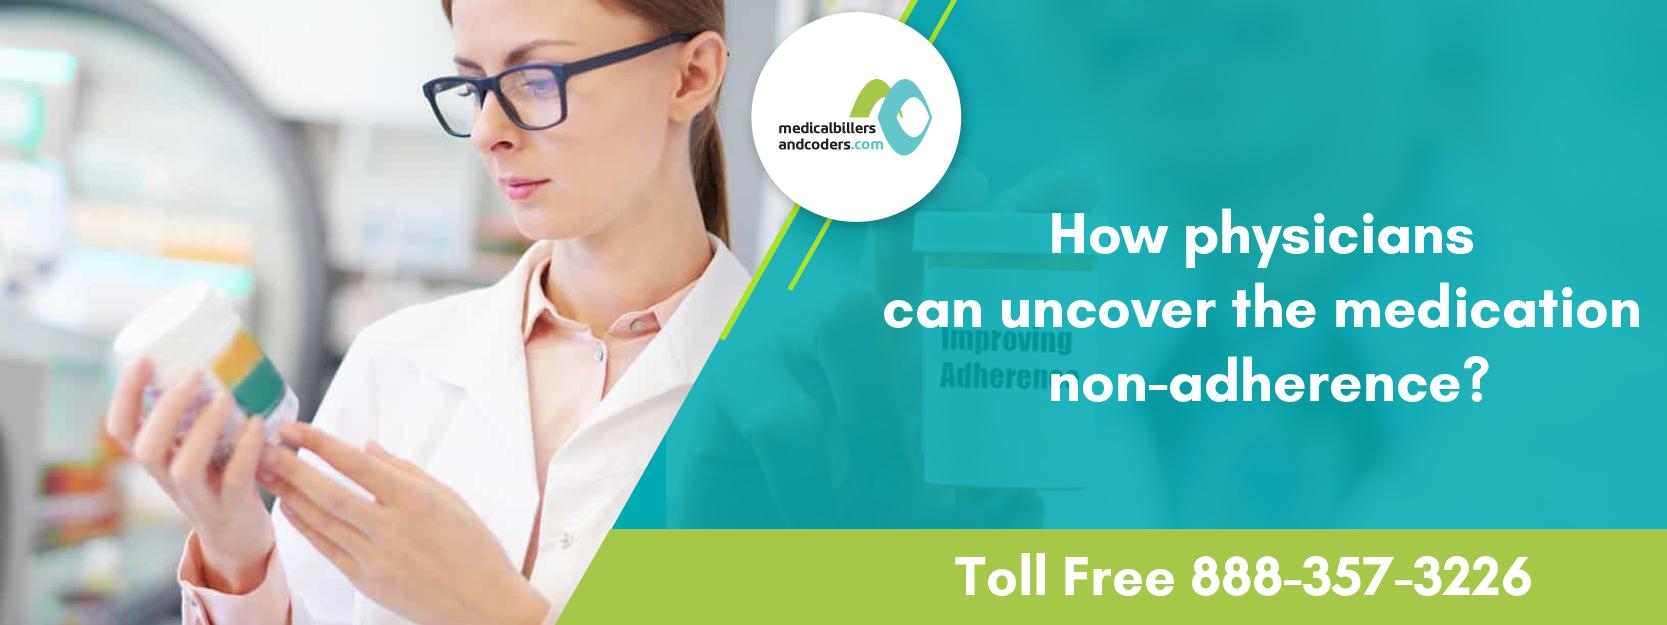 How Physicians can uncover the Medication Non-Adherence